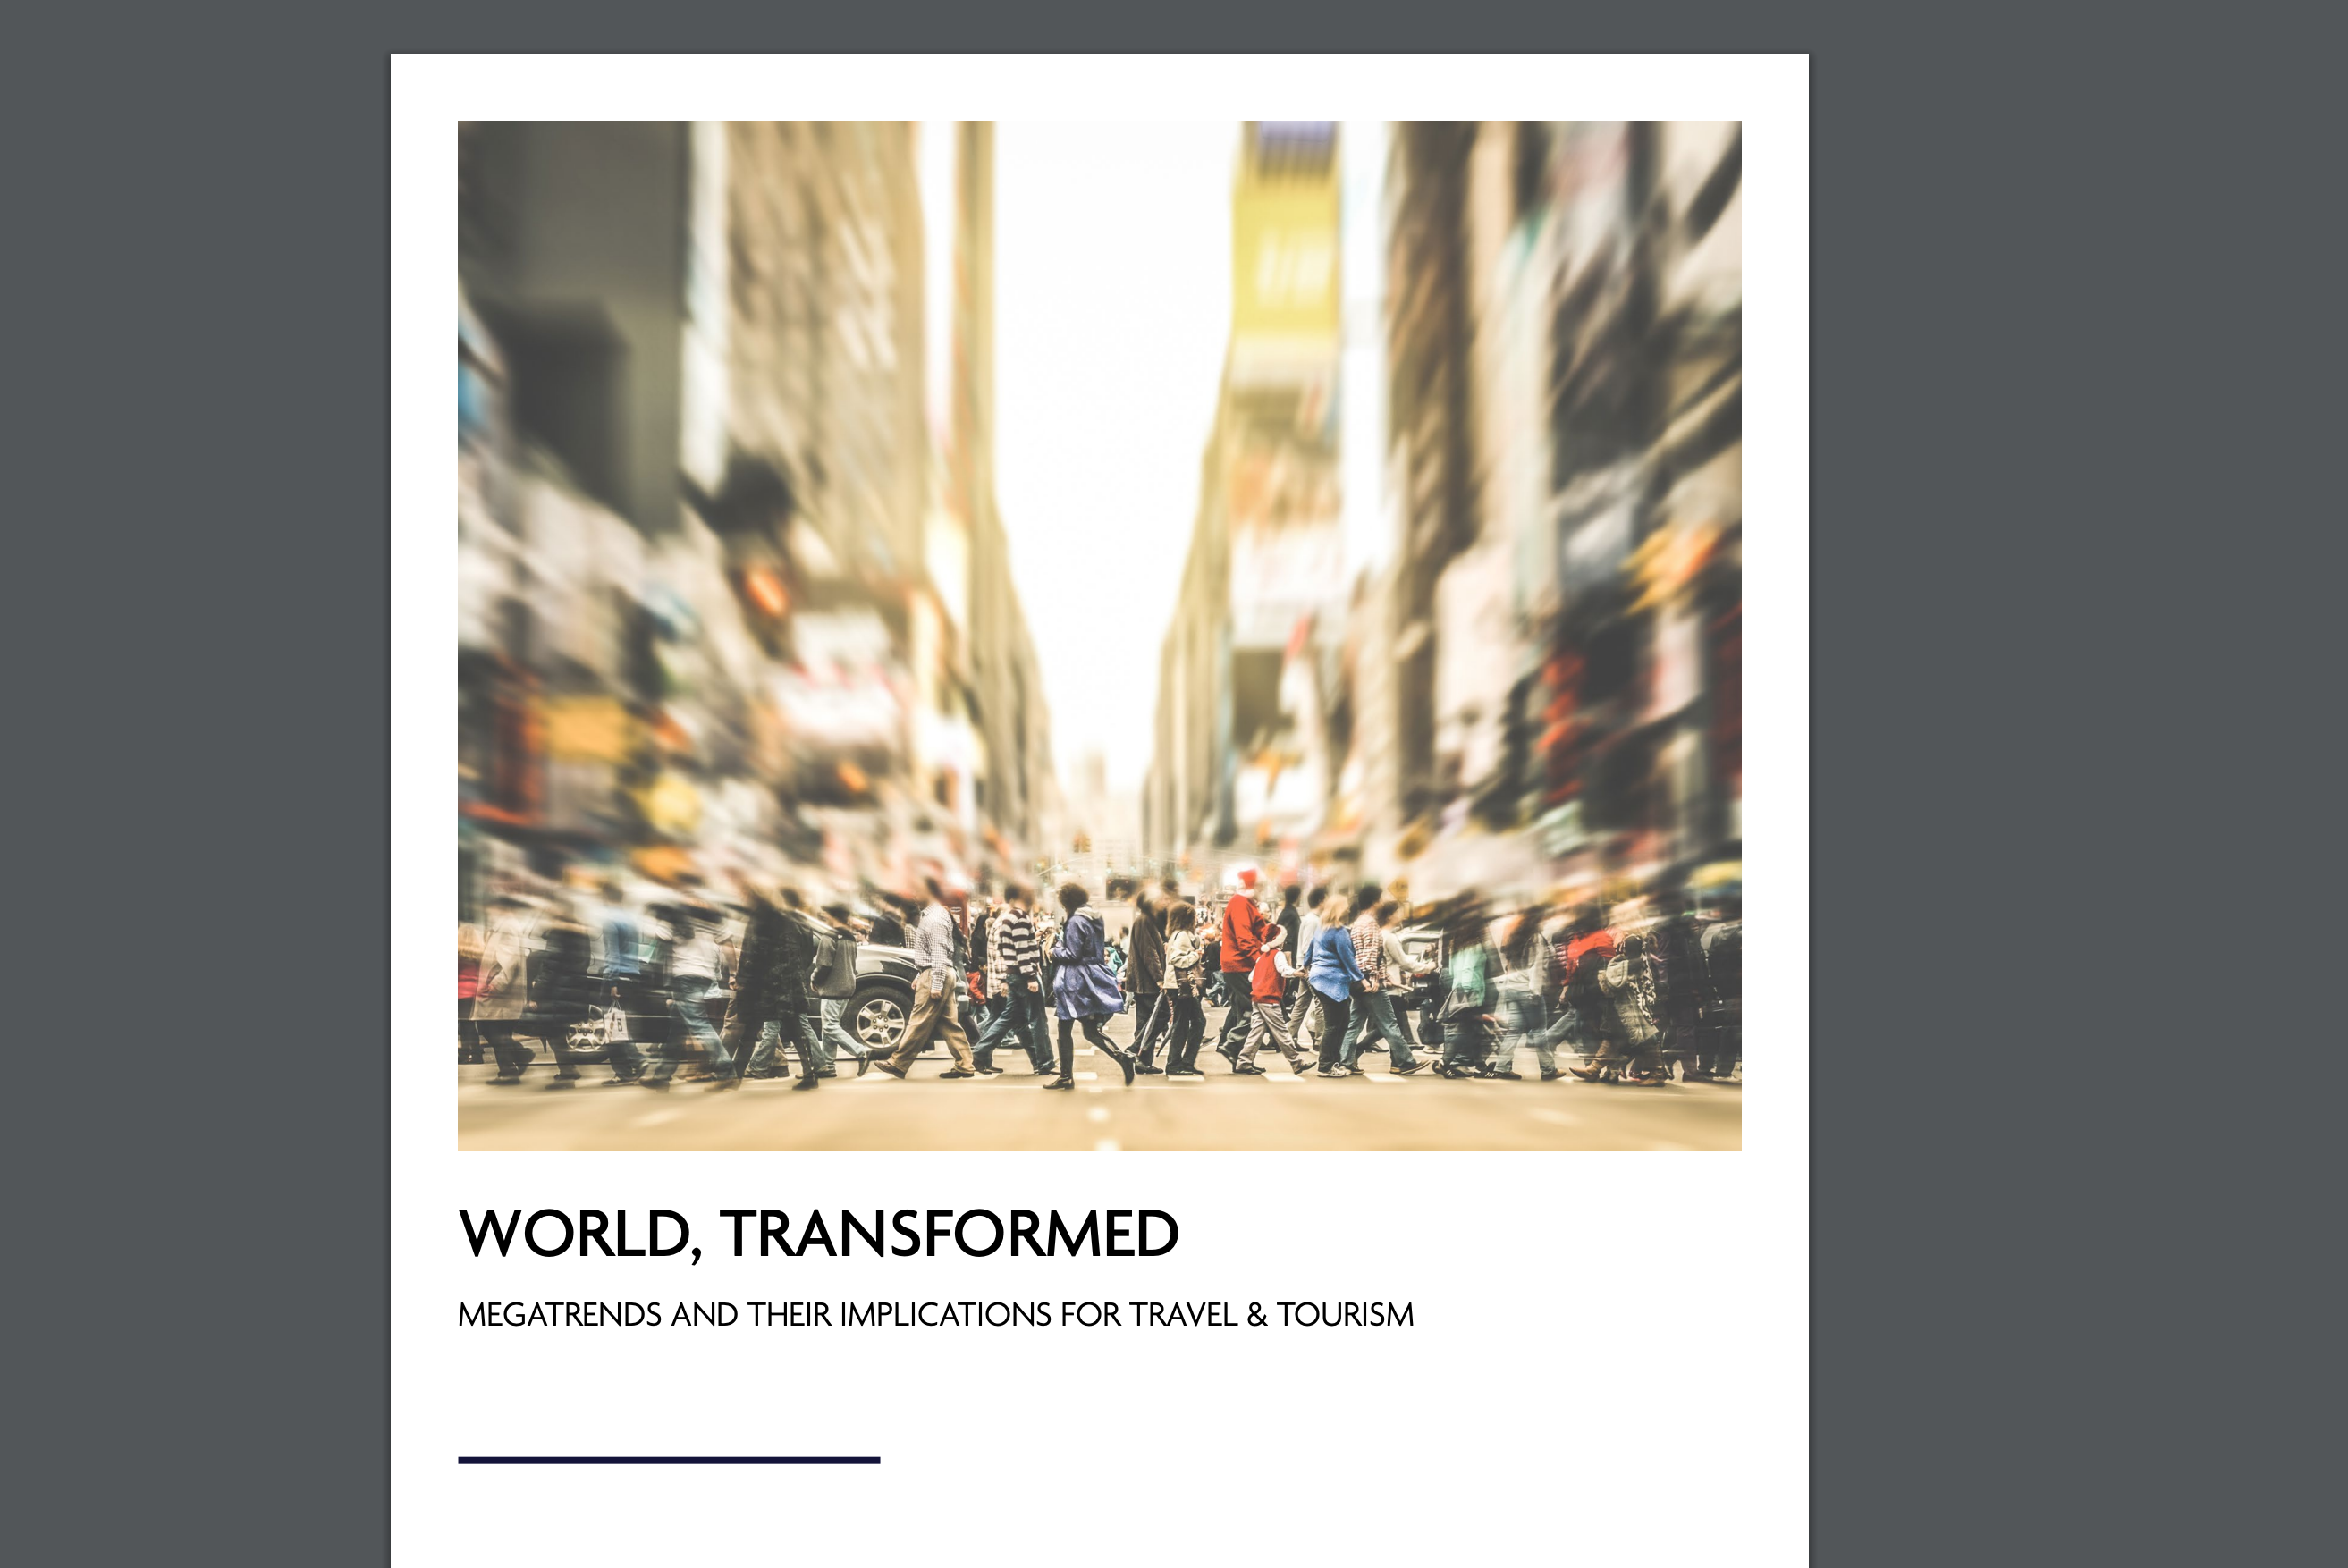 #FITUR2019: WTTC announces Global Megatrends Shaping New Imperatives for the Travel & Tourism Industry